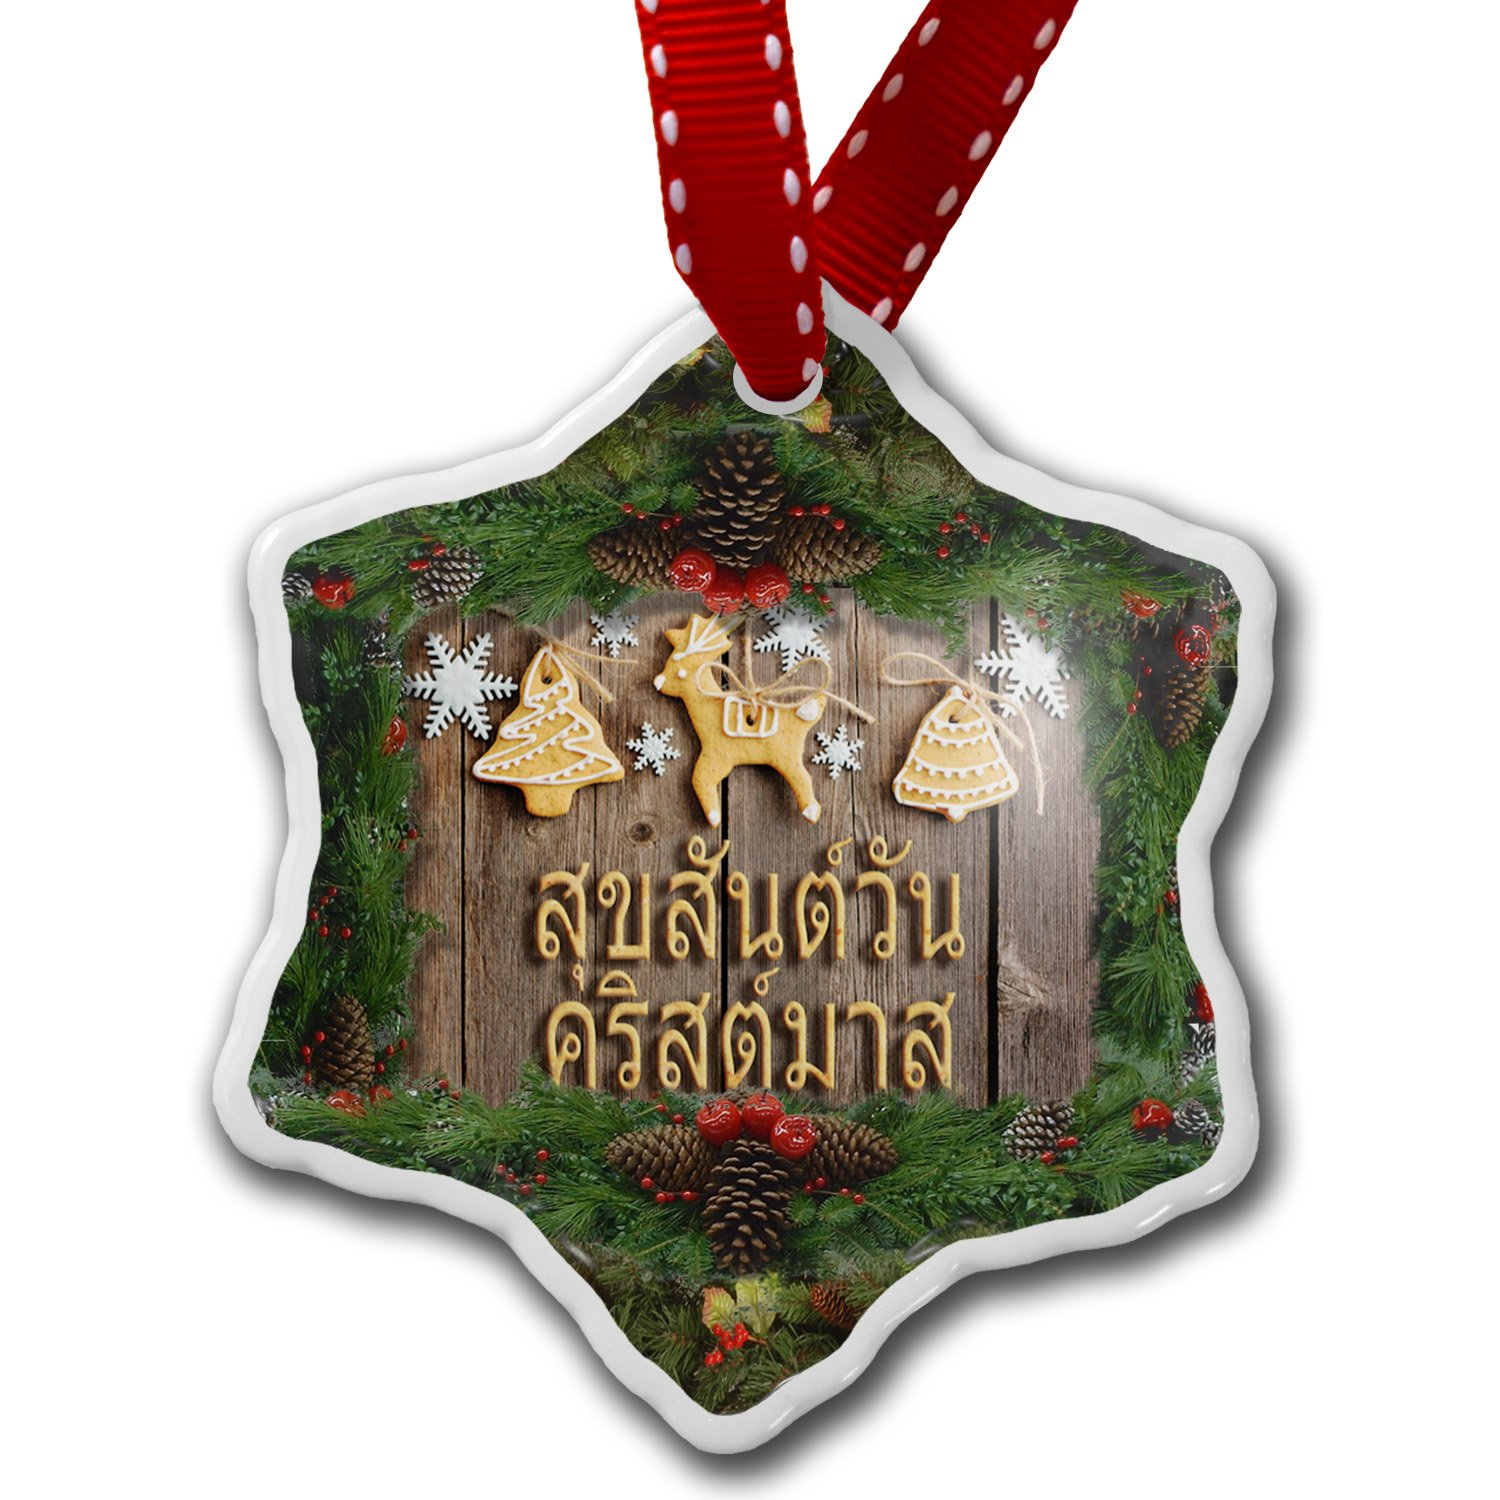 Christmas Ornament Merry Christmas in Thai from Thailand - Neonblond by NEONBLOND